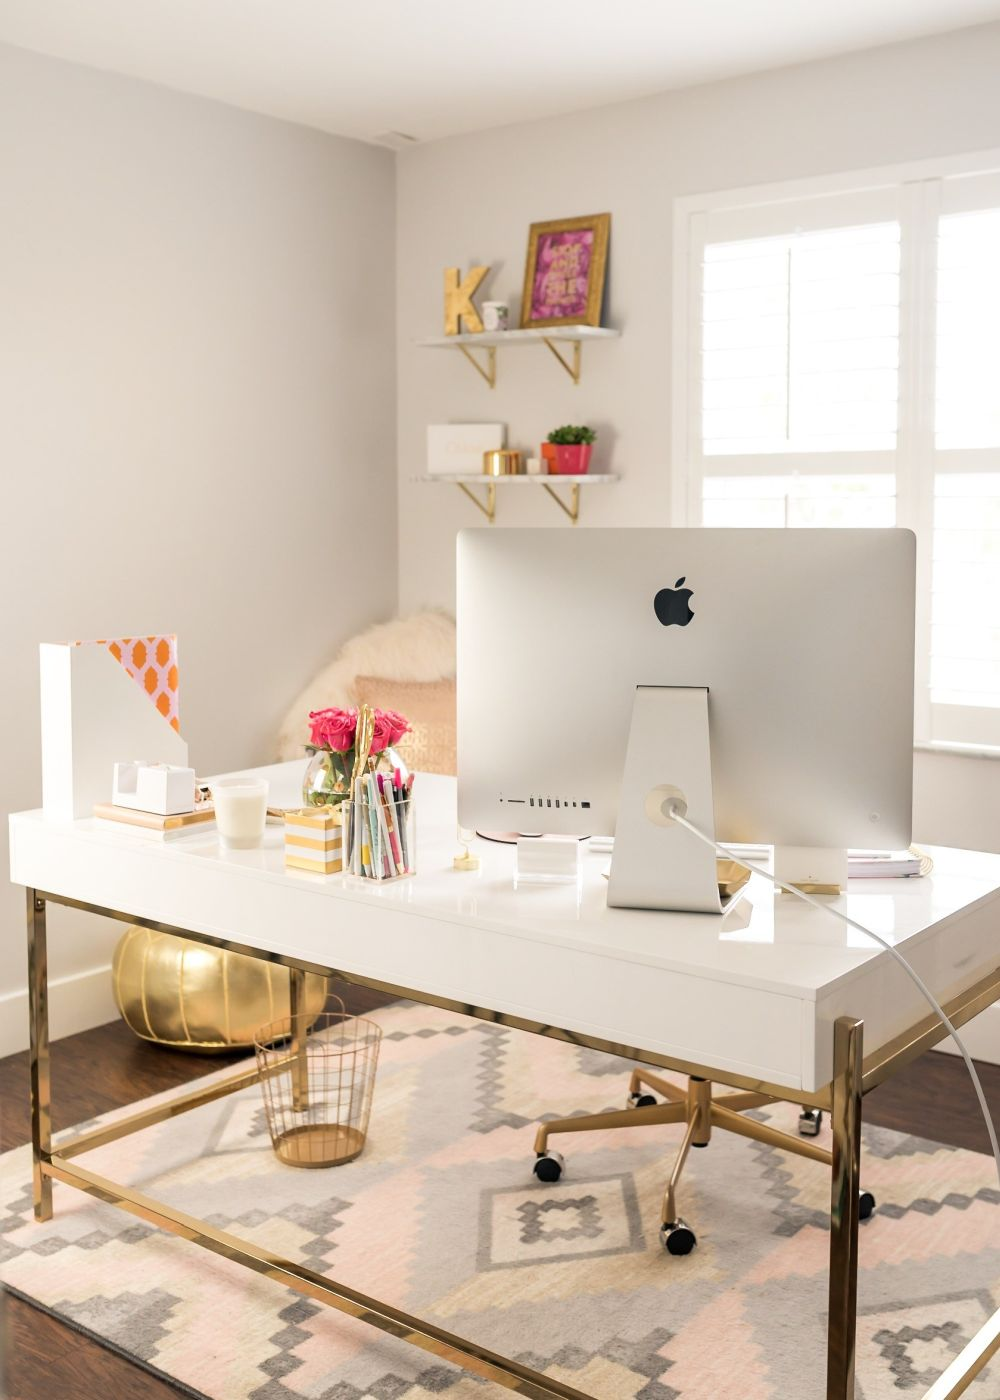 1572963344 132 how to create an office decor that looks and feels like home - How To Create An Office Decor That Looks And Feels Like Home